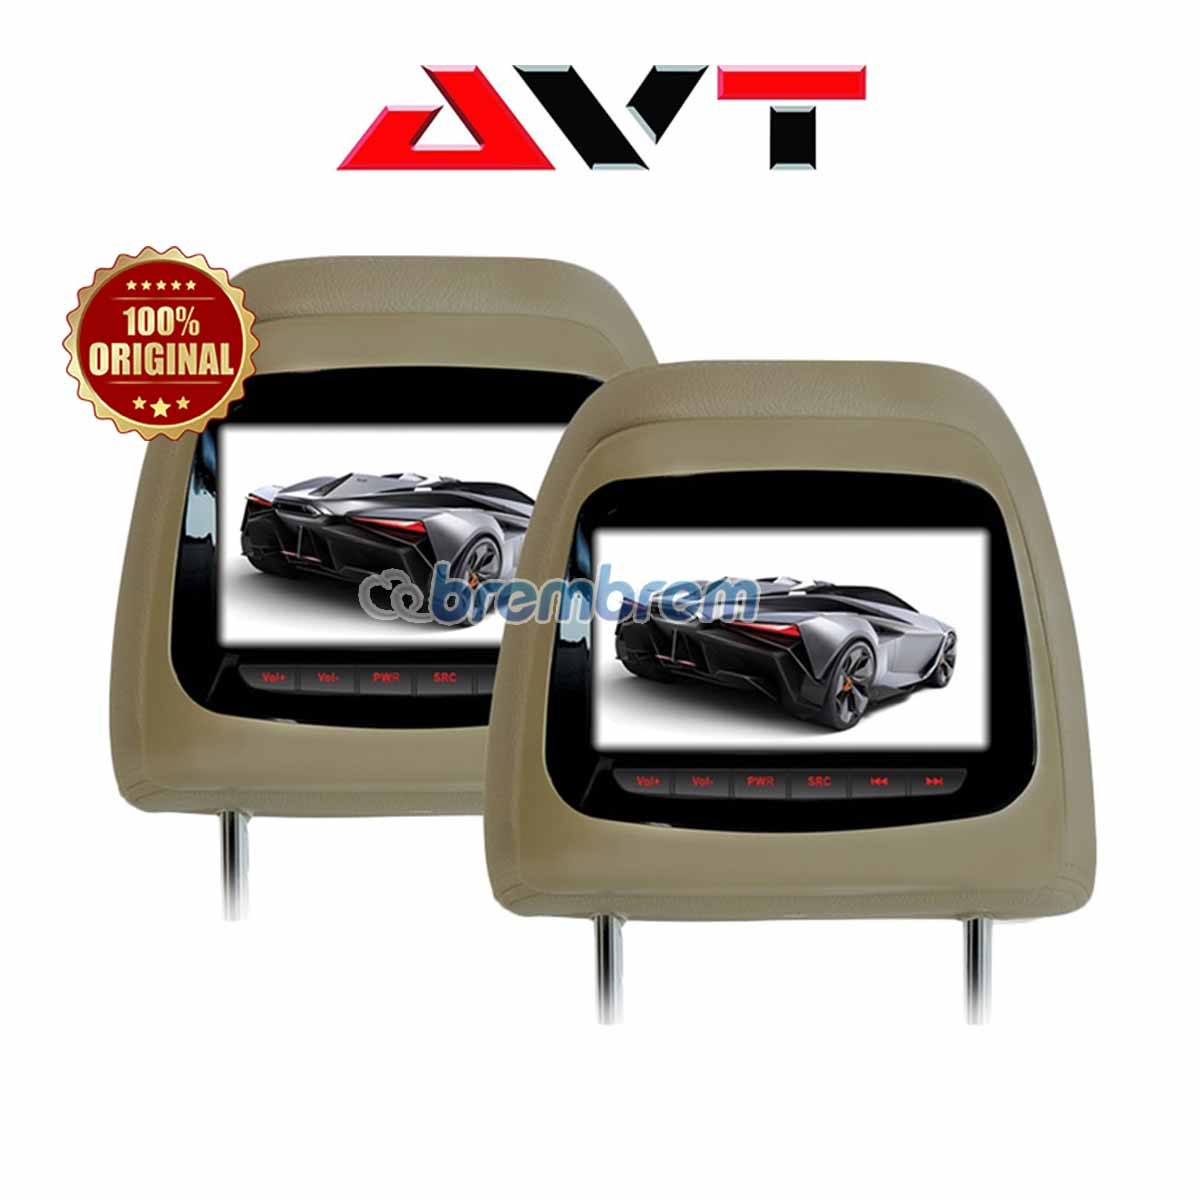 AVT HM 7188 FOR PAJERO SPORT - HEADREST OEM